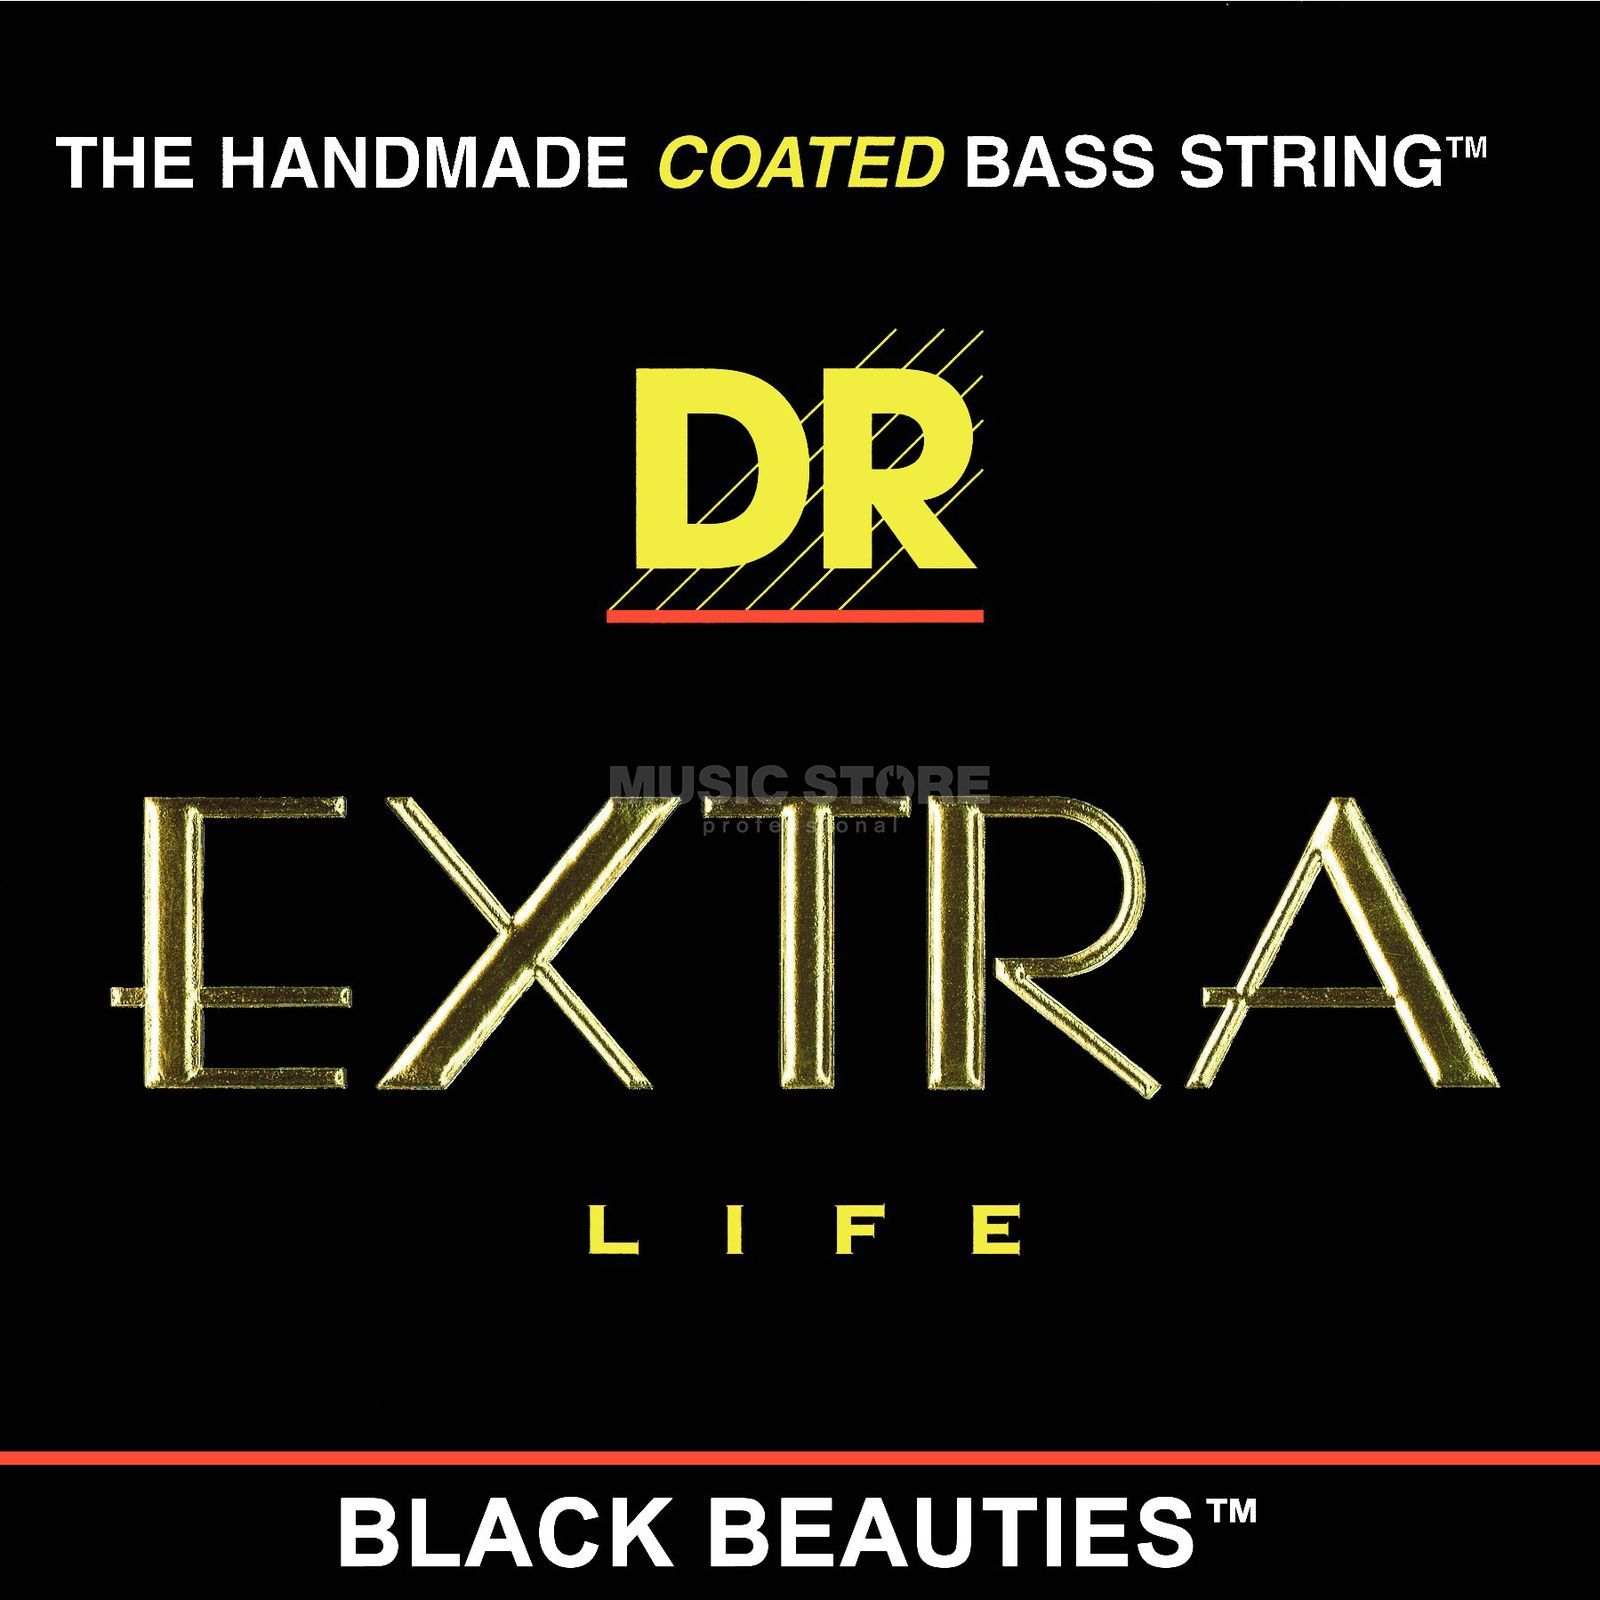 DR Bass Strings Set of 4: 50-110 Extra-Life Black Beauties BKBT-50 Immagine prodotto